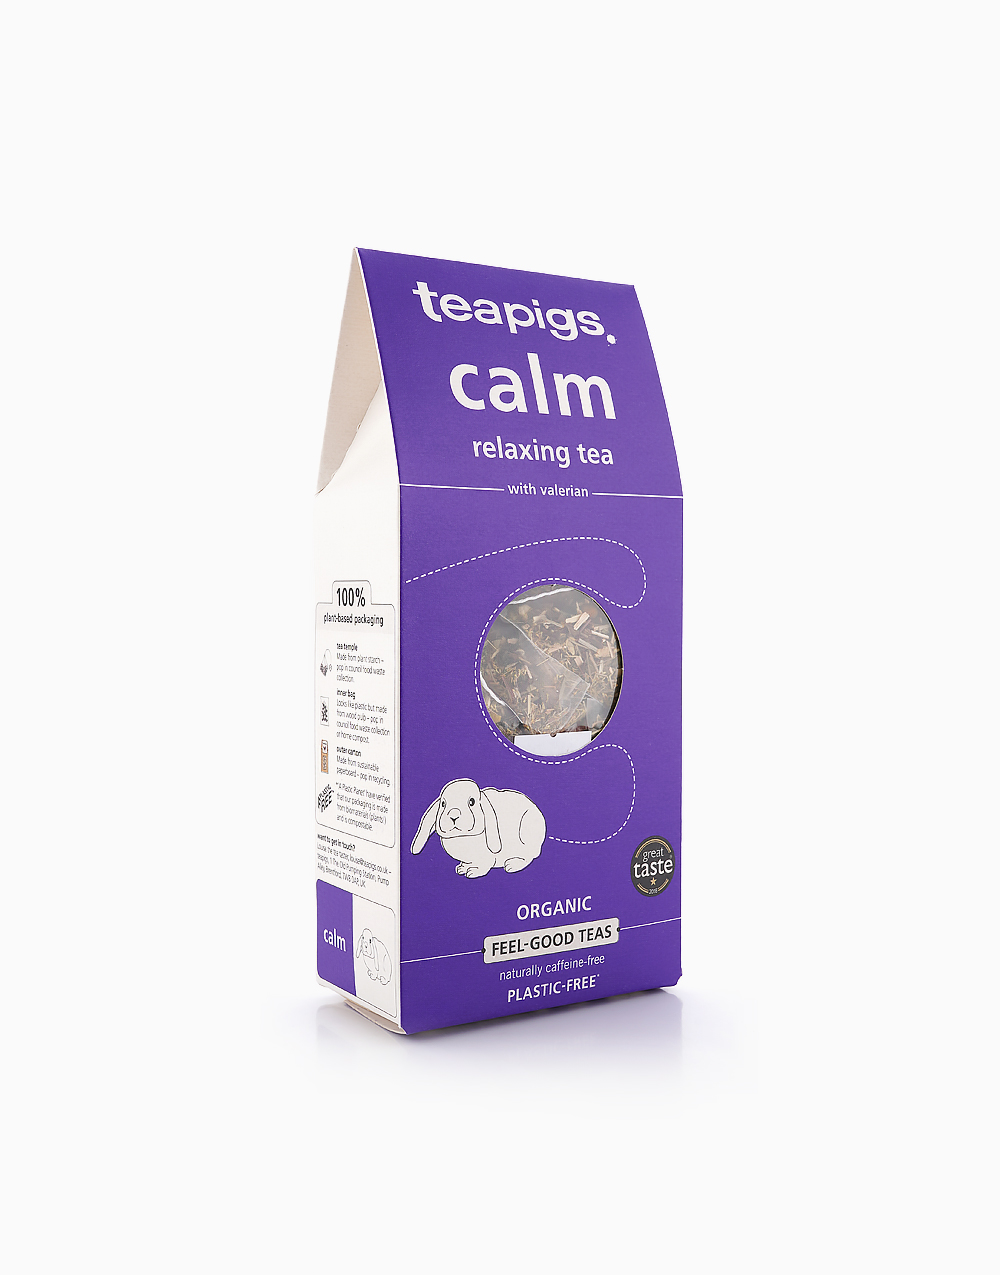 Calm Relaxing Tea by Teapigs